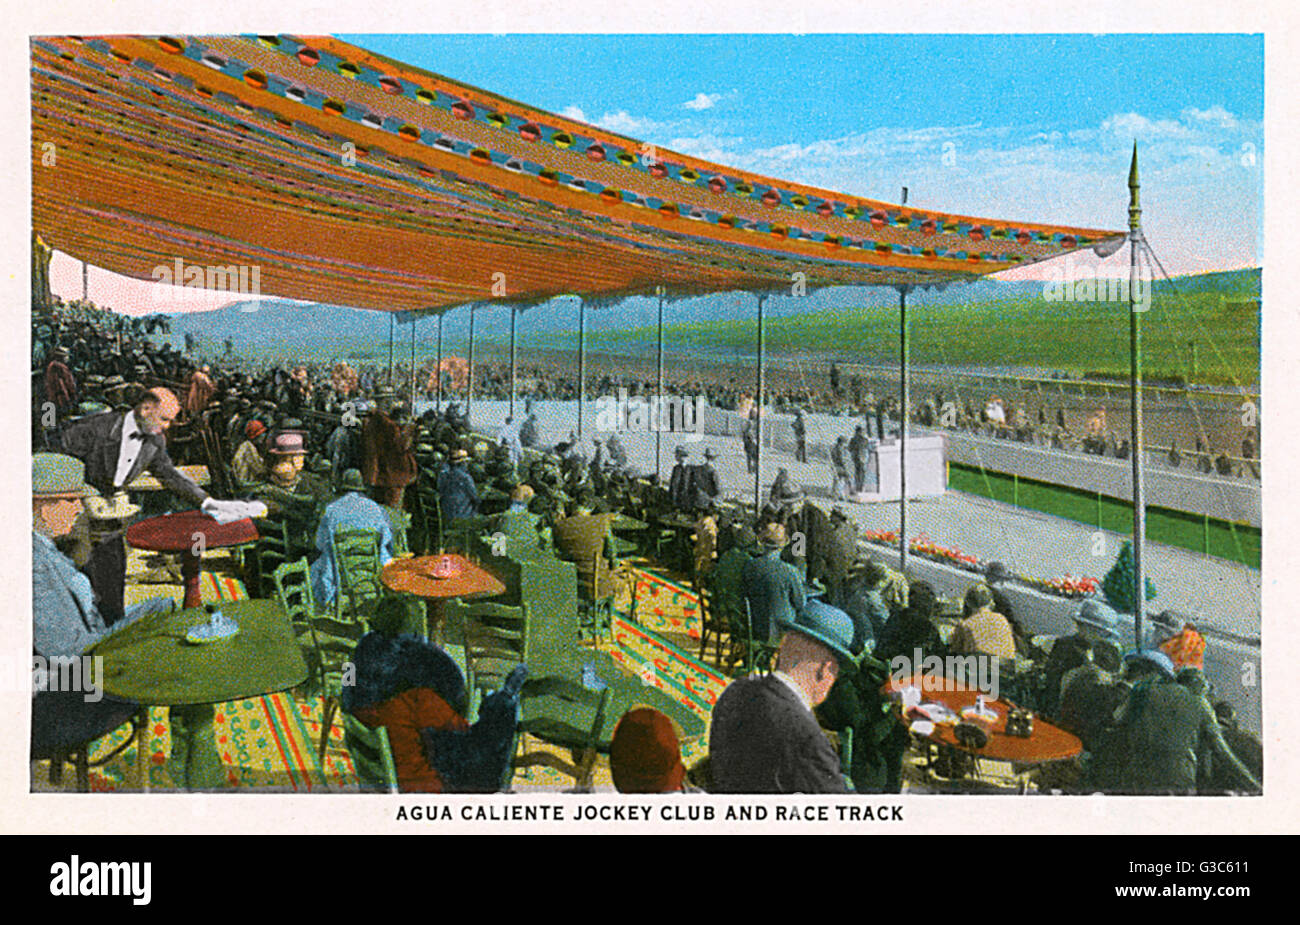 Jockey Club and racetrack at Agua Caliente, a popular leisure centre in Tijuana, Mexico.      Date: 1930 - Stock Image